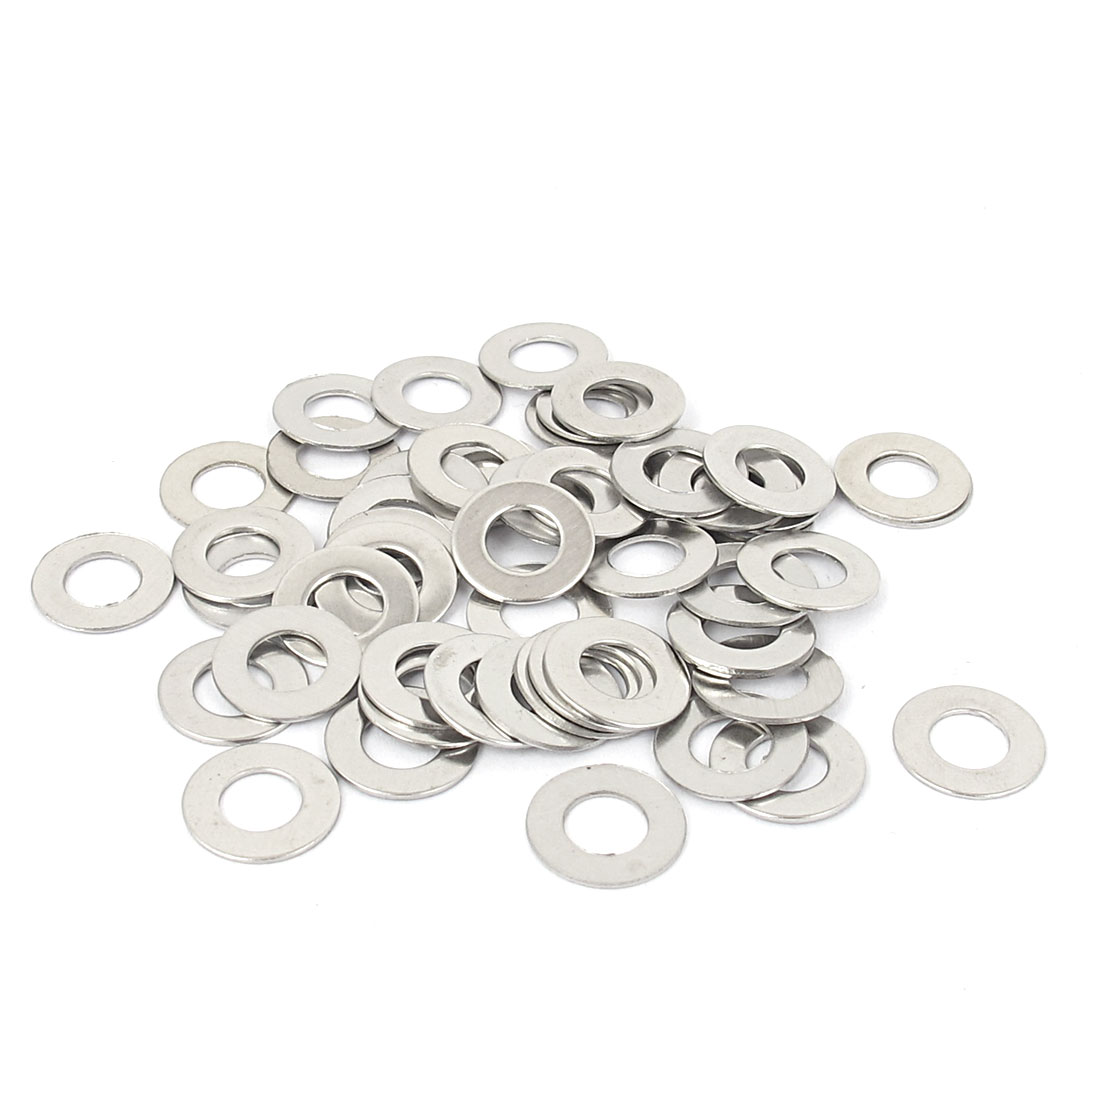 50pcs M6x12mmx0.7mm Stainless Steel Flat Washer Gasket Fastener Rings Silver Tone